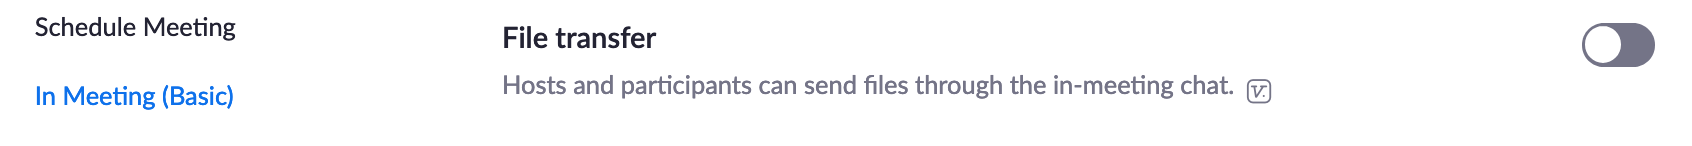 file-transfers.png